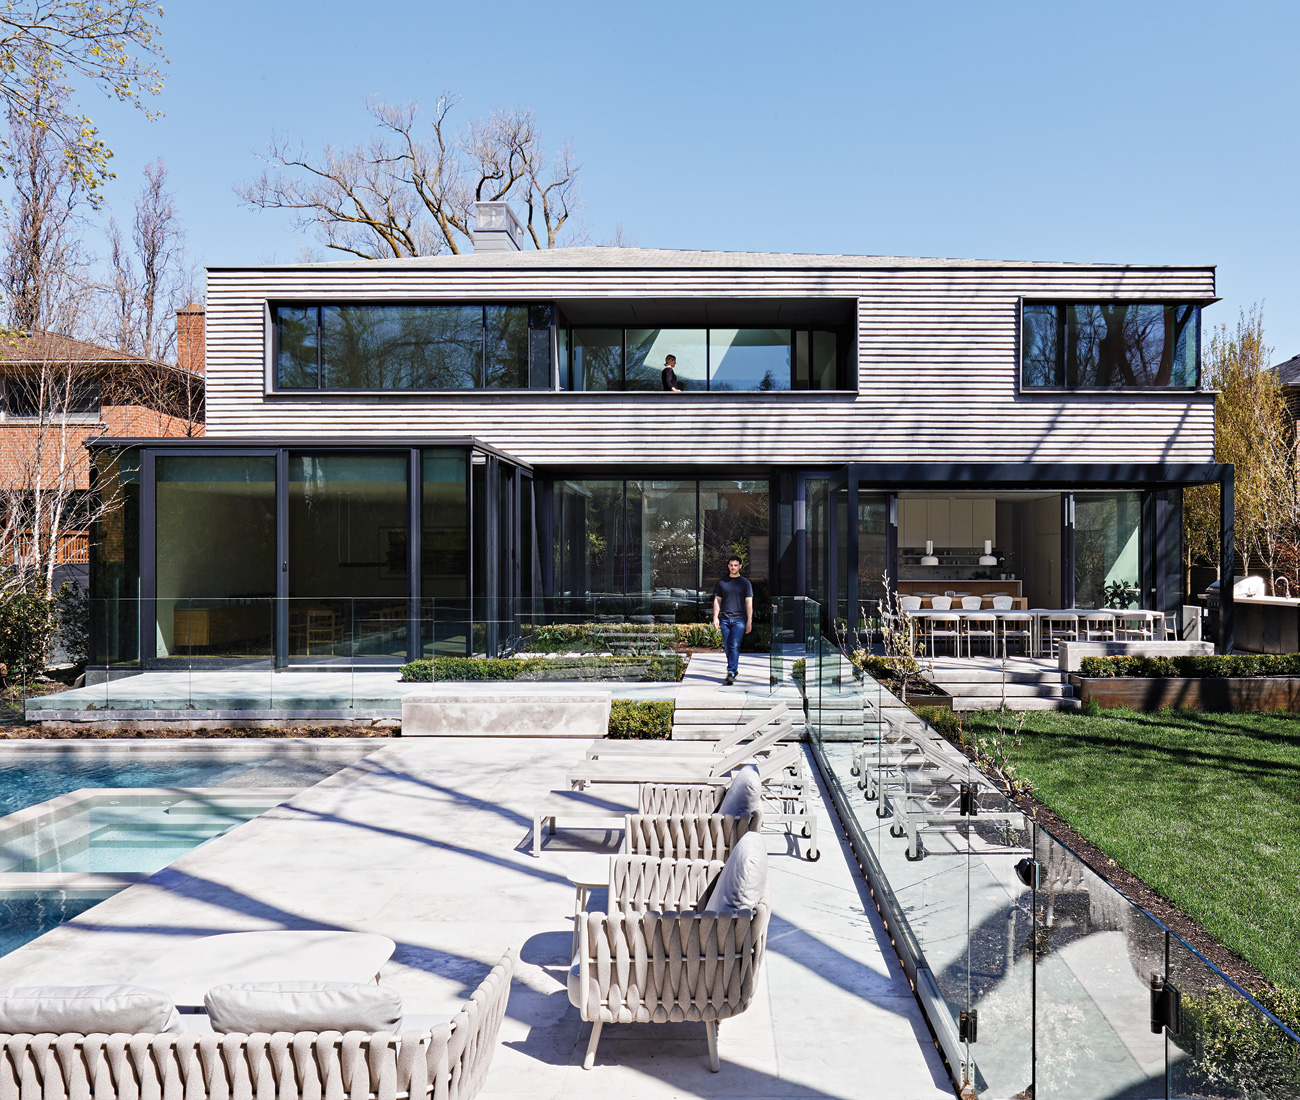 The back of the home reveals its hipped-roof design and upper walkout. Build by Mazenga; landscaping by Fox Whyte; Tribù furniture from Avenue Road.